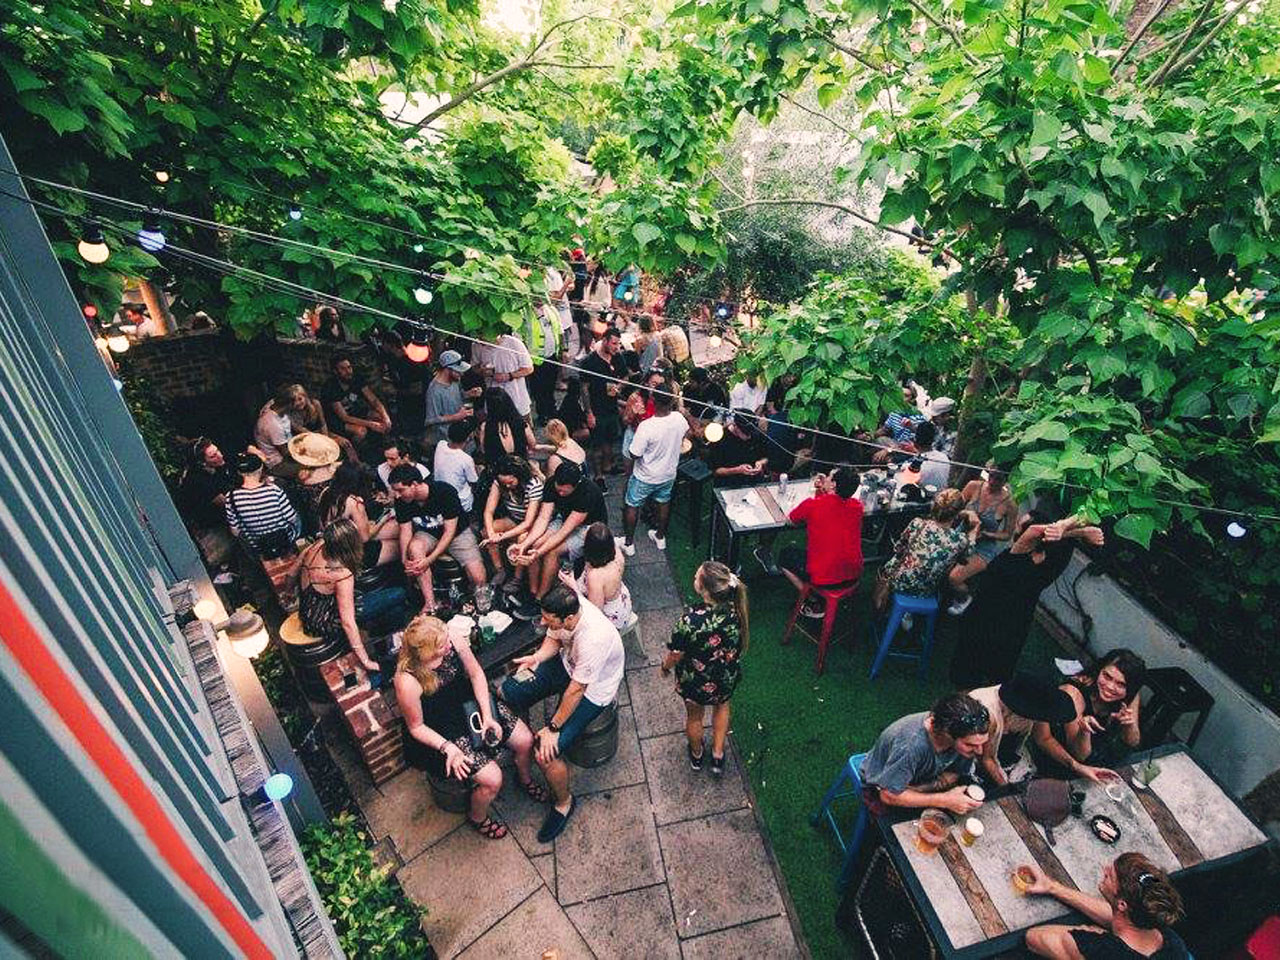 Balcony view of guests attending an event at The Backyard